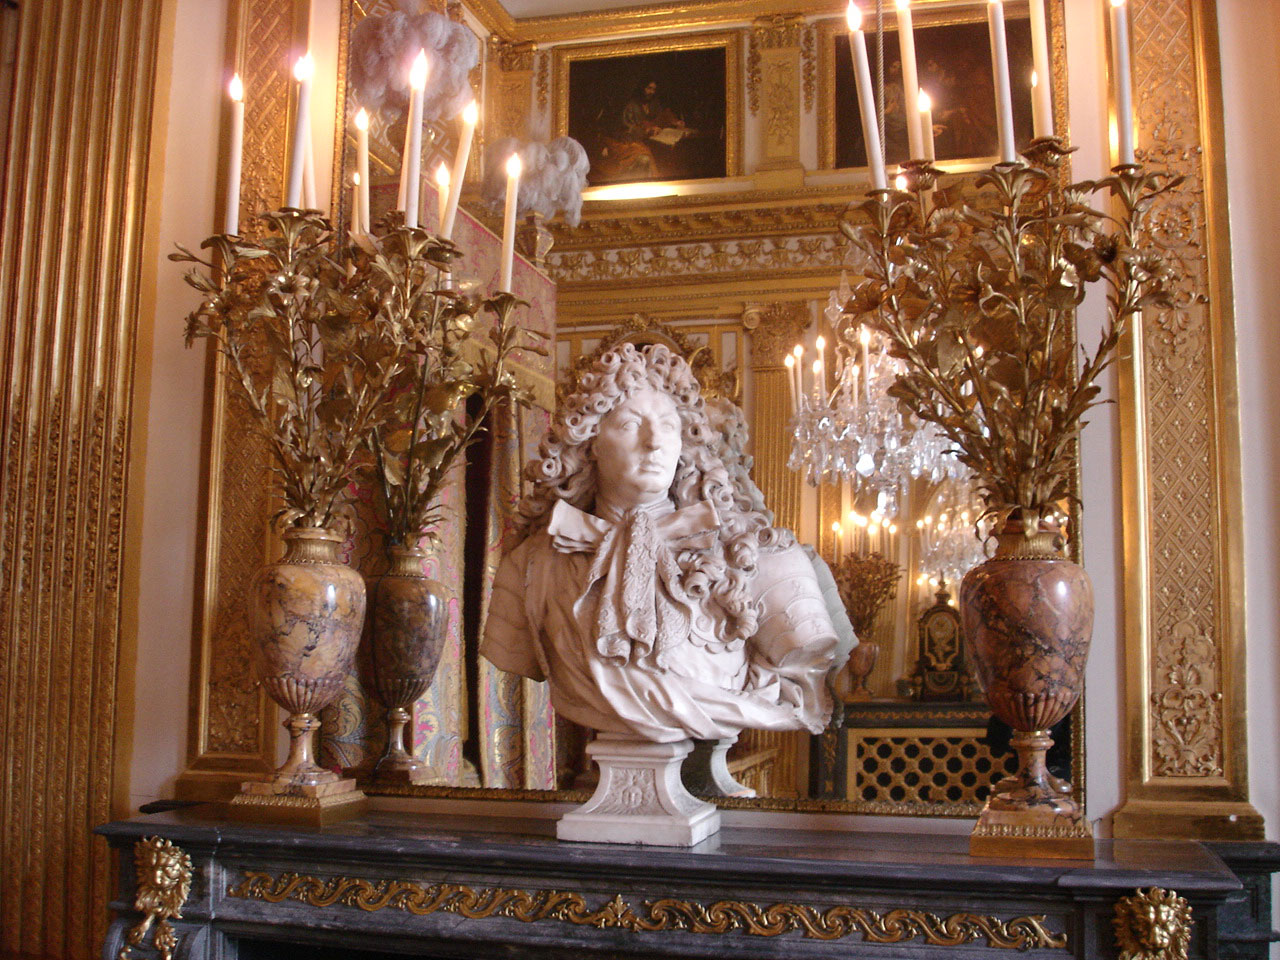 https://upload.wikimedia.org/wikipedia/commons/3/39/Versailles%2C_chambre_du_roi%2C_buste.jpg